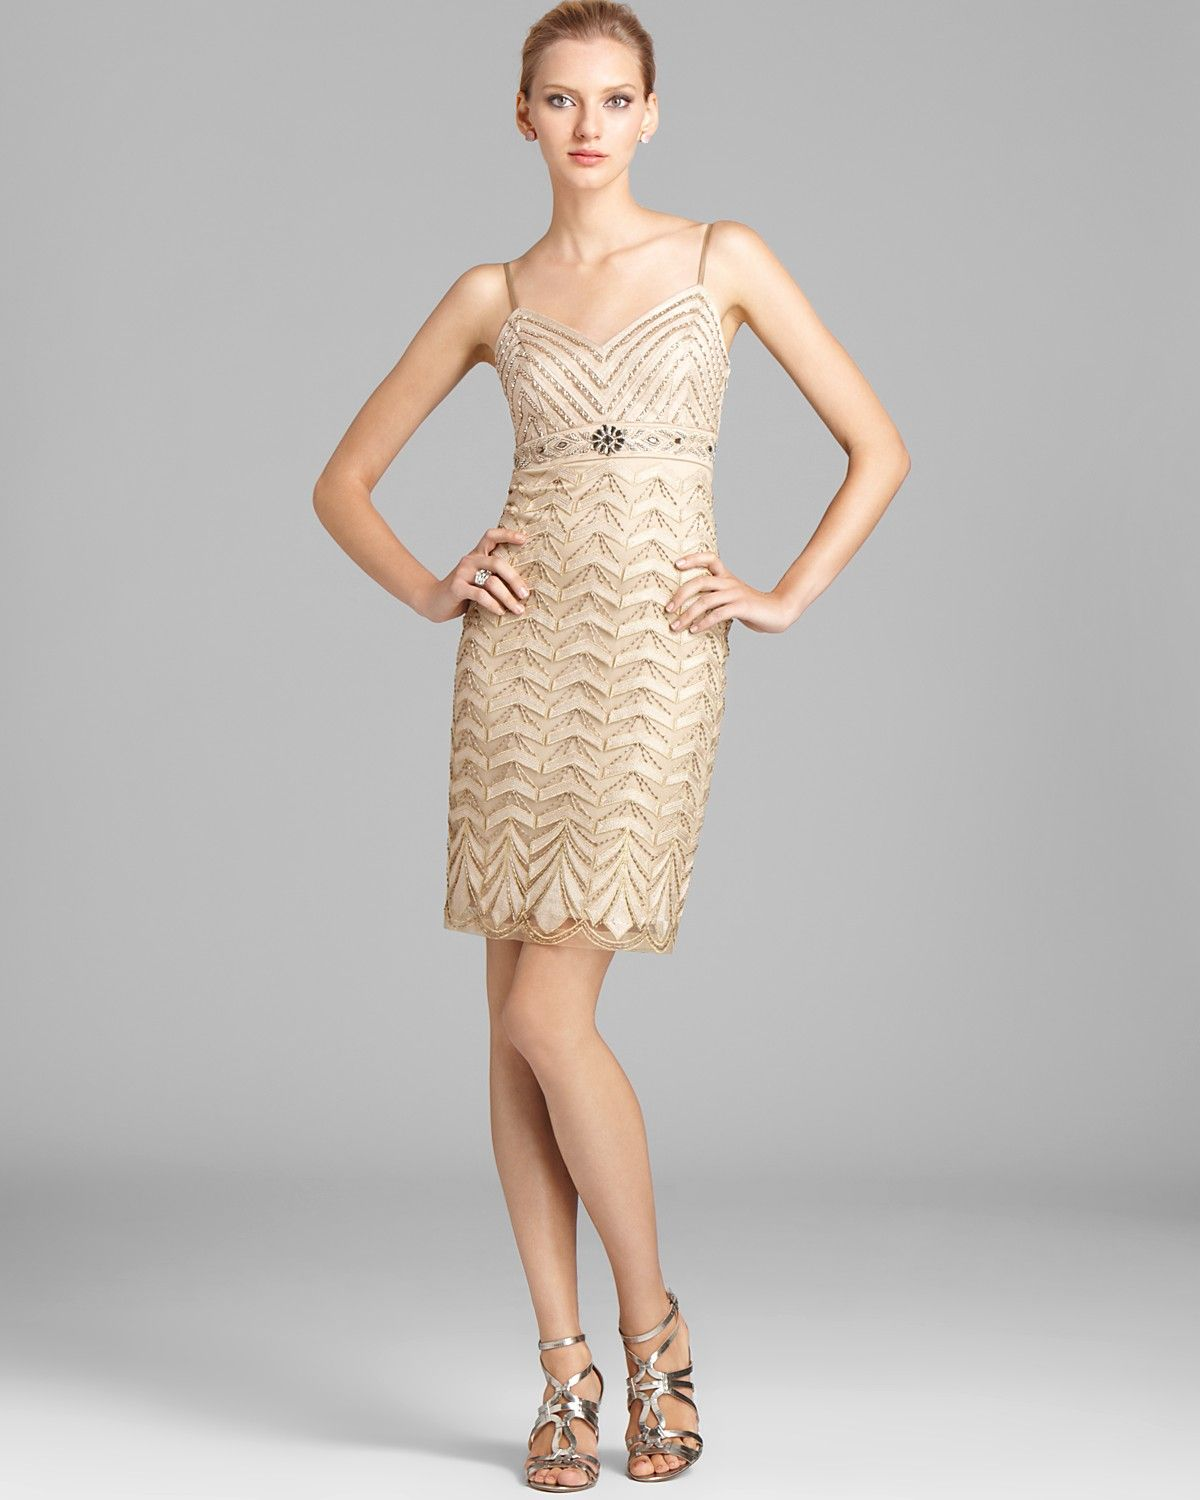 Sue wong spaghetti strap dress bloomingdales x bridesmaids sue wong spaghetti strap dress bloomingdales ombrellifo Images